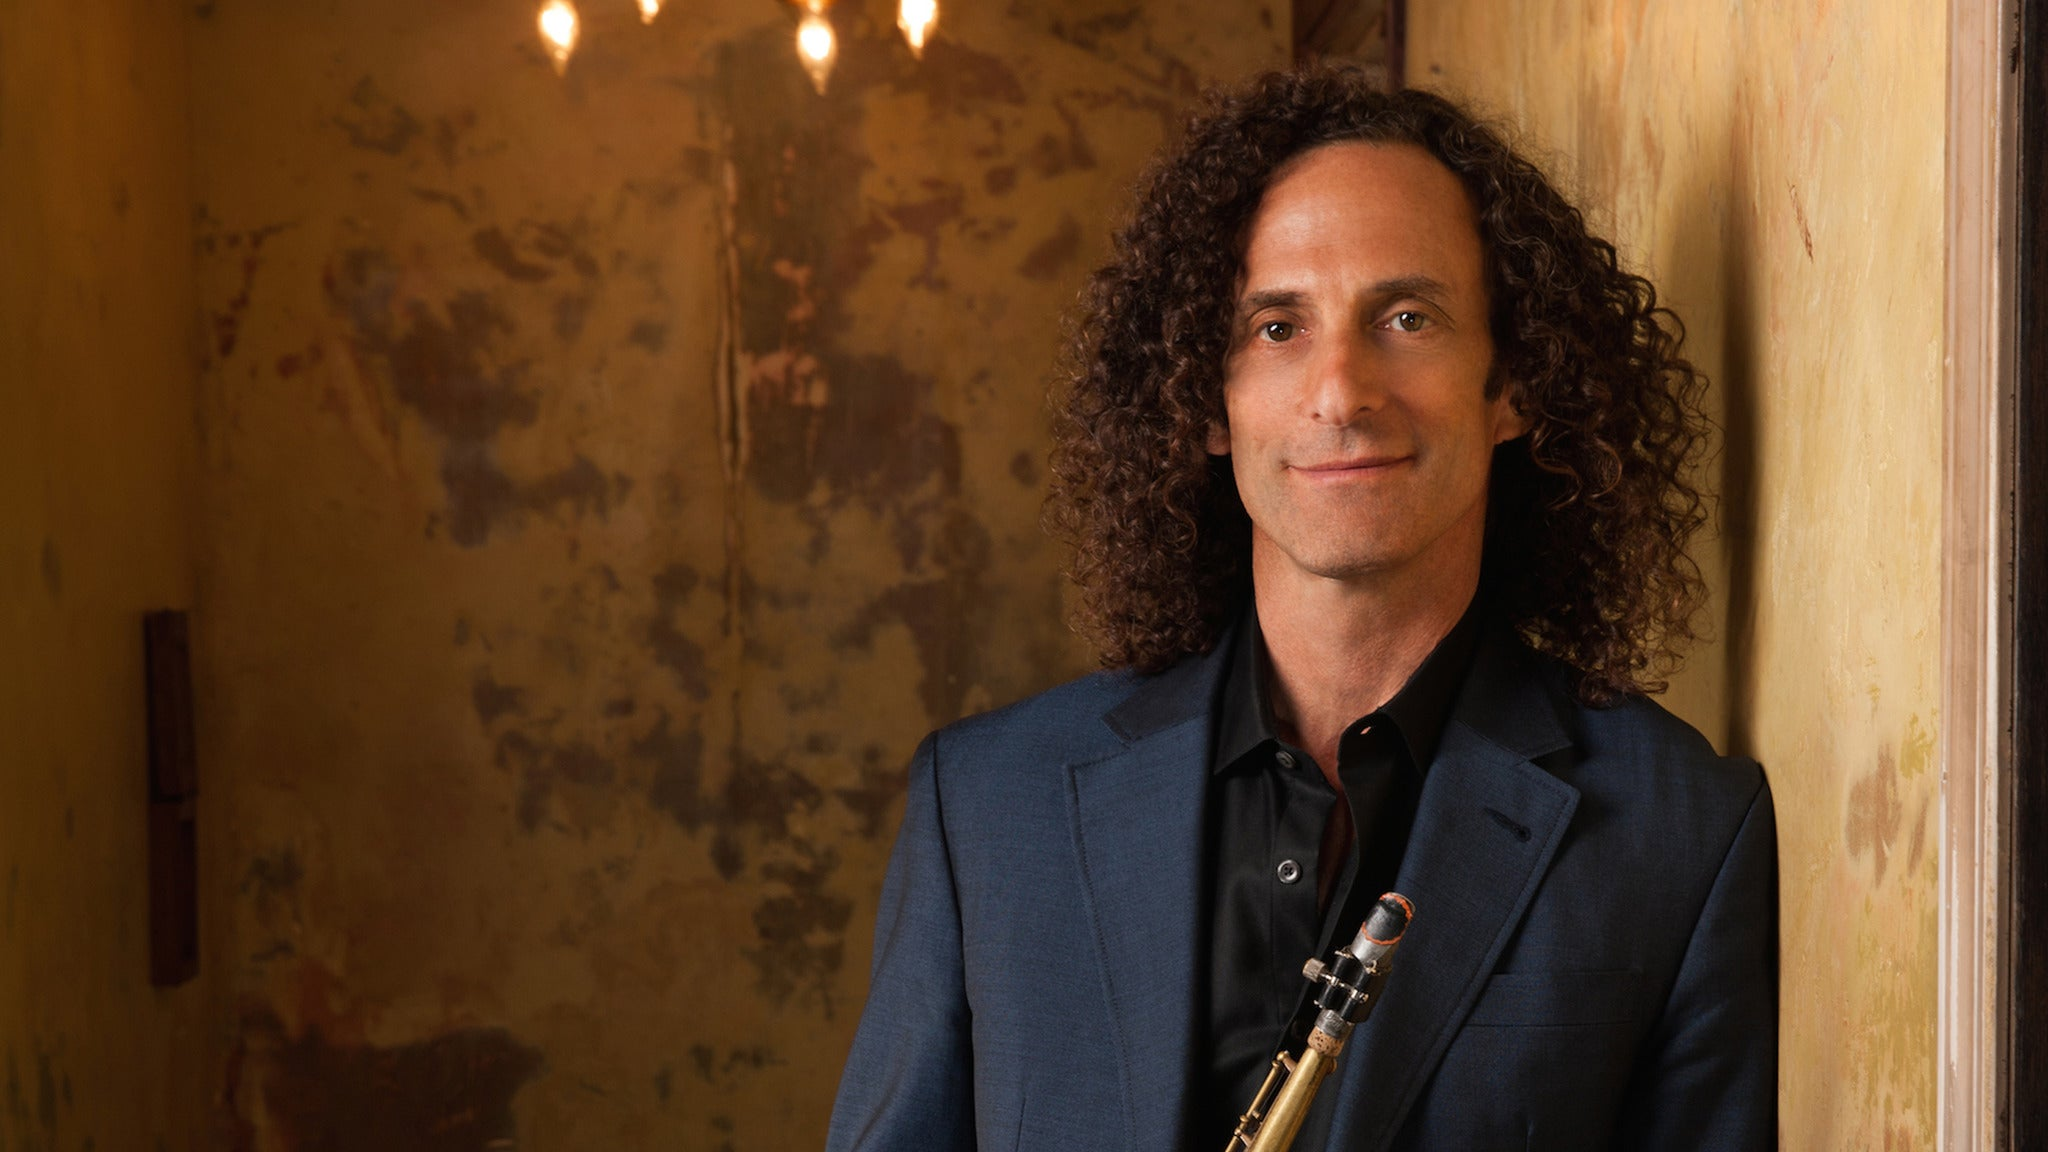 Civic Arts Plaza presents KENNY G